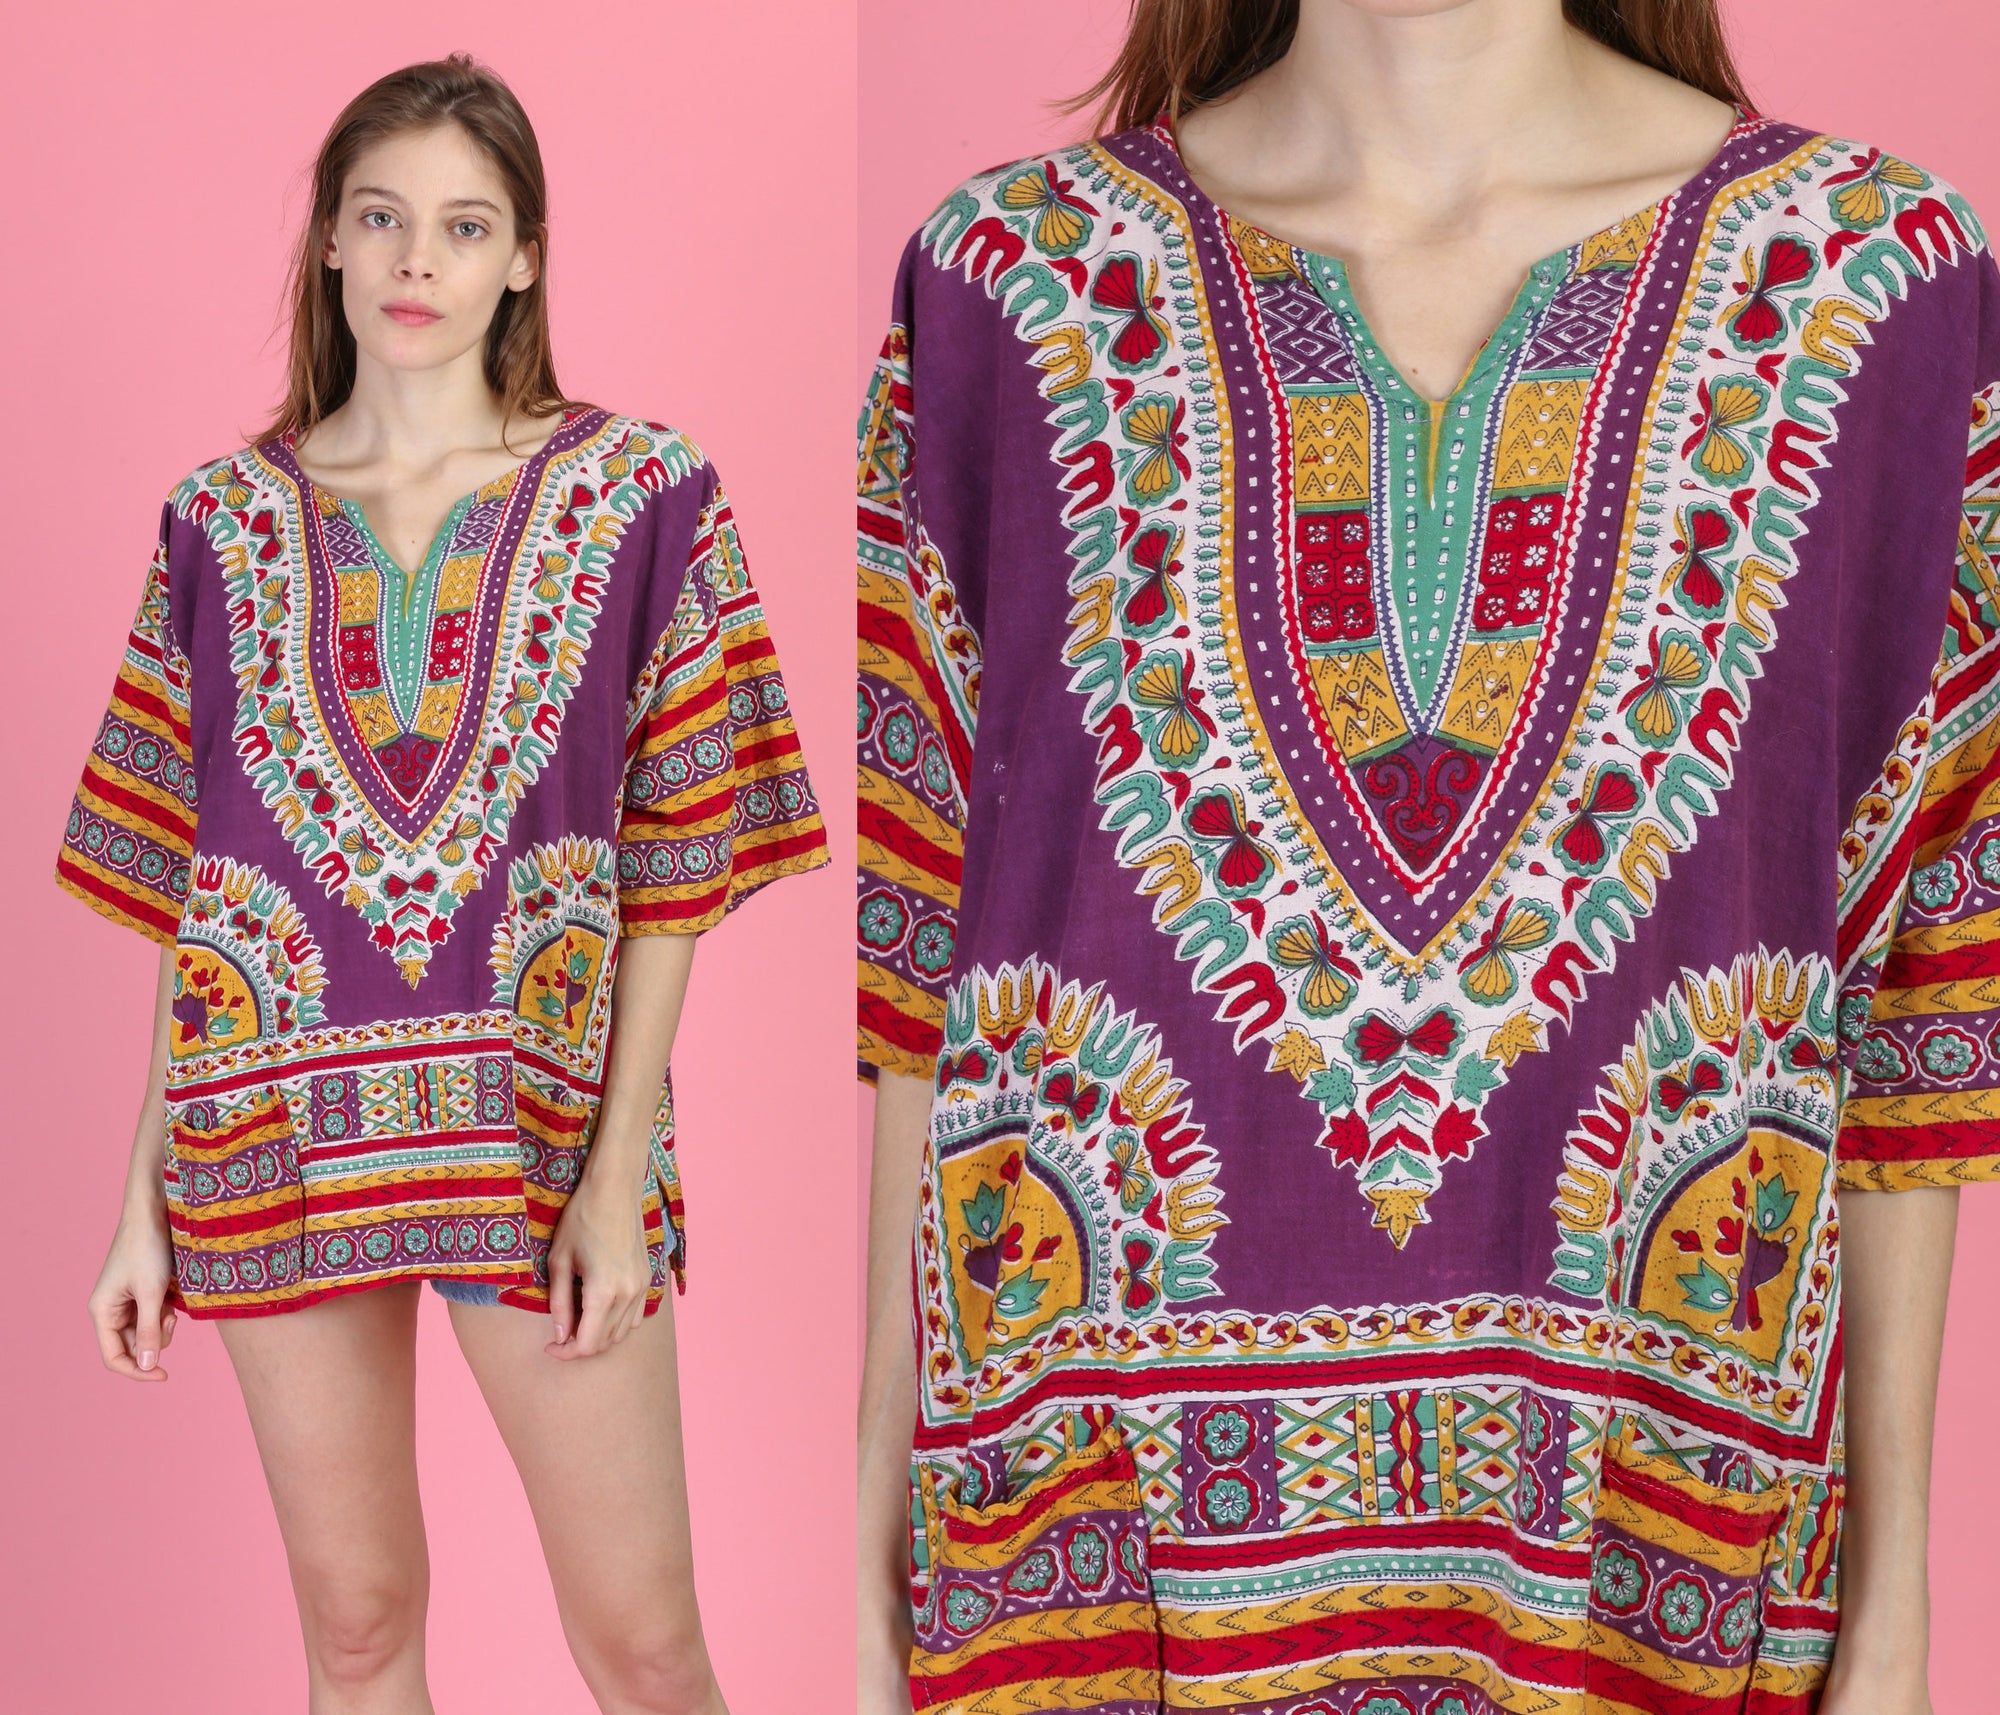 Vintage Boho Dashiki Tunic Top - 2XL